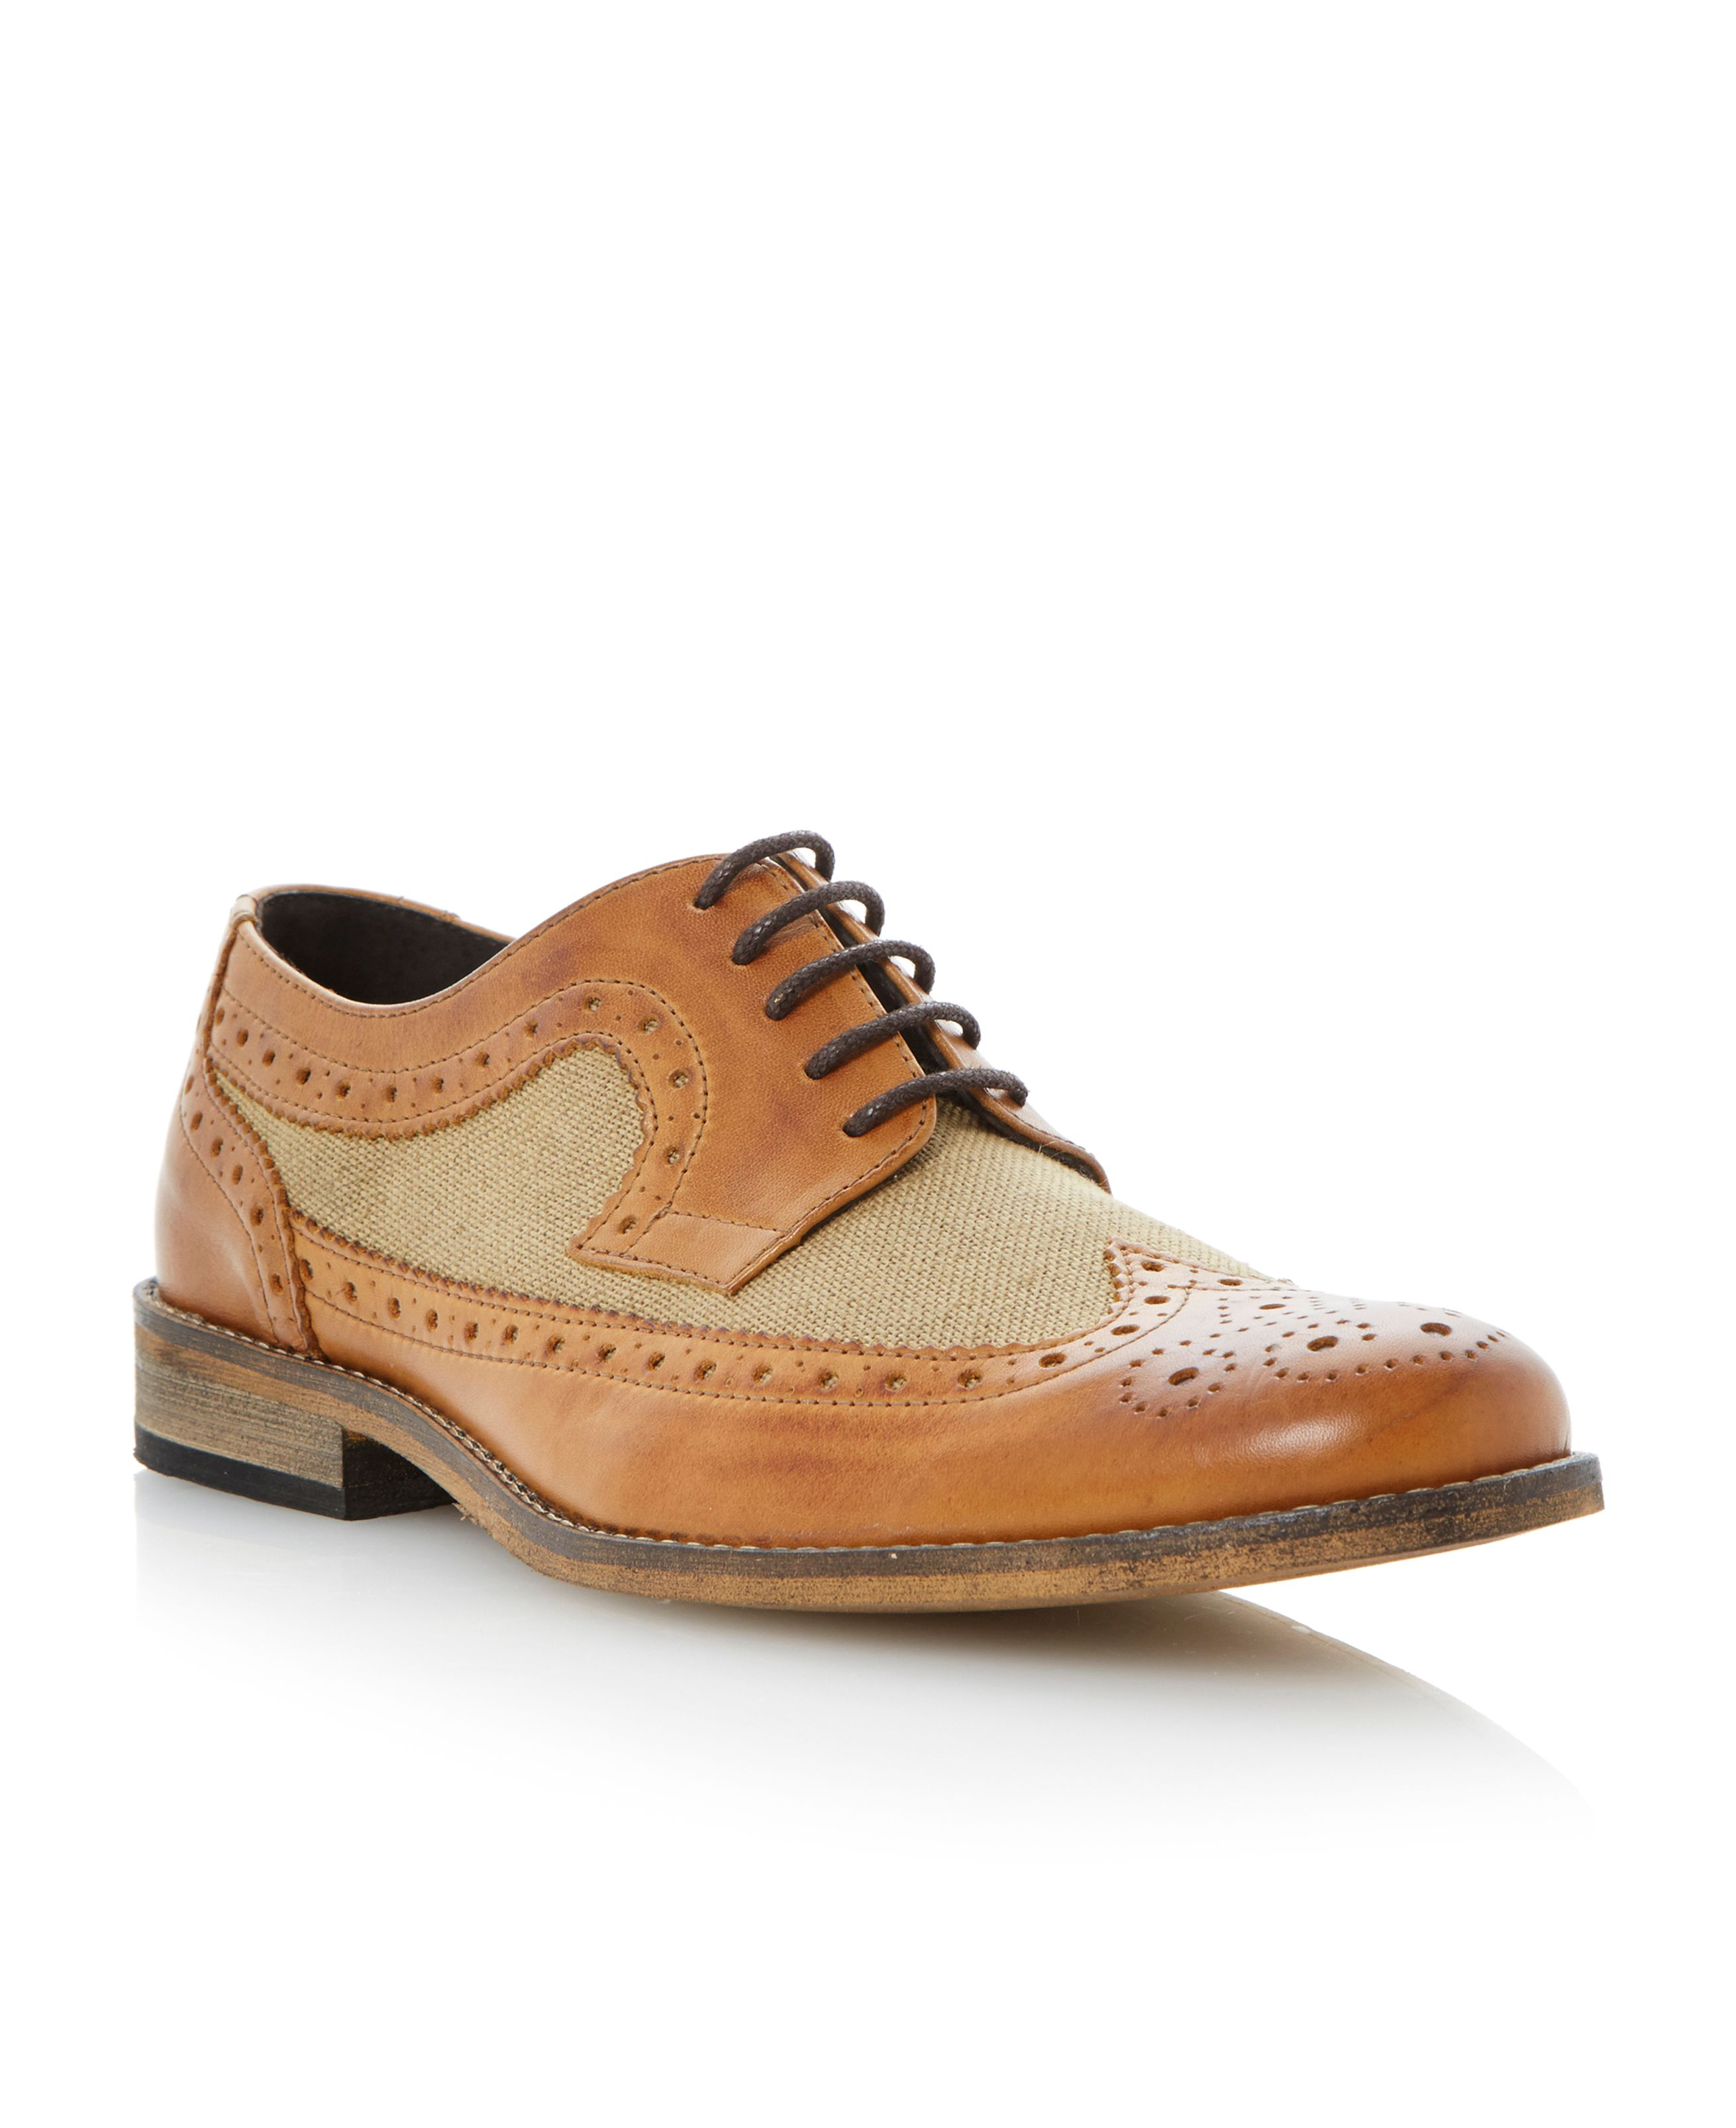 Bart lace up wingtip brogues